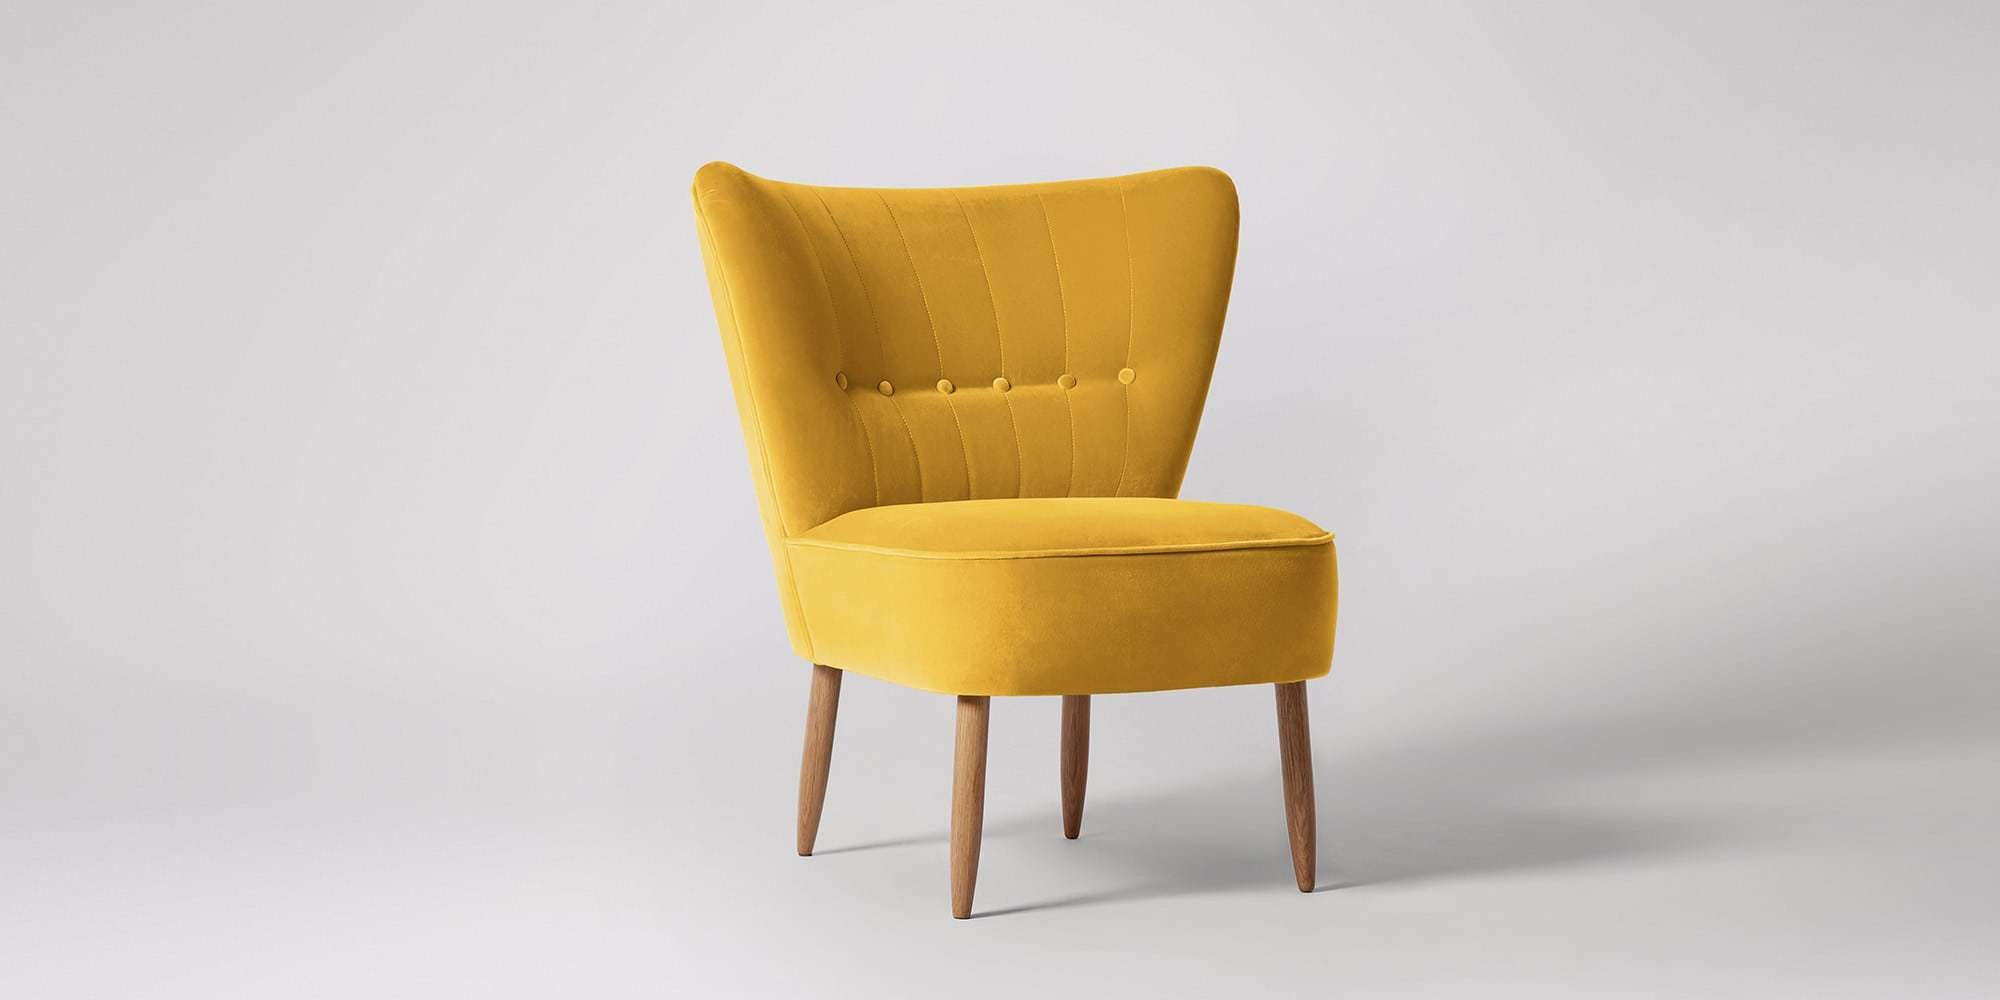 strandmon wing chair review desk kohls must have mustard yellow chairs interior design buyers